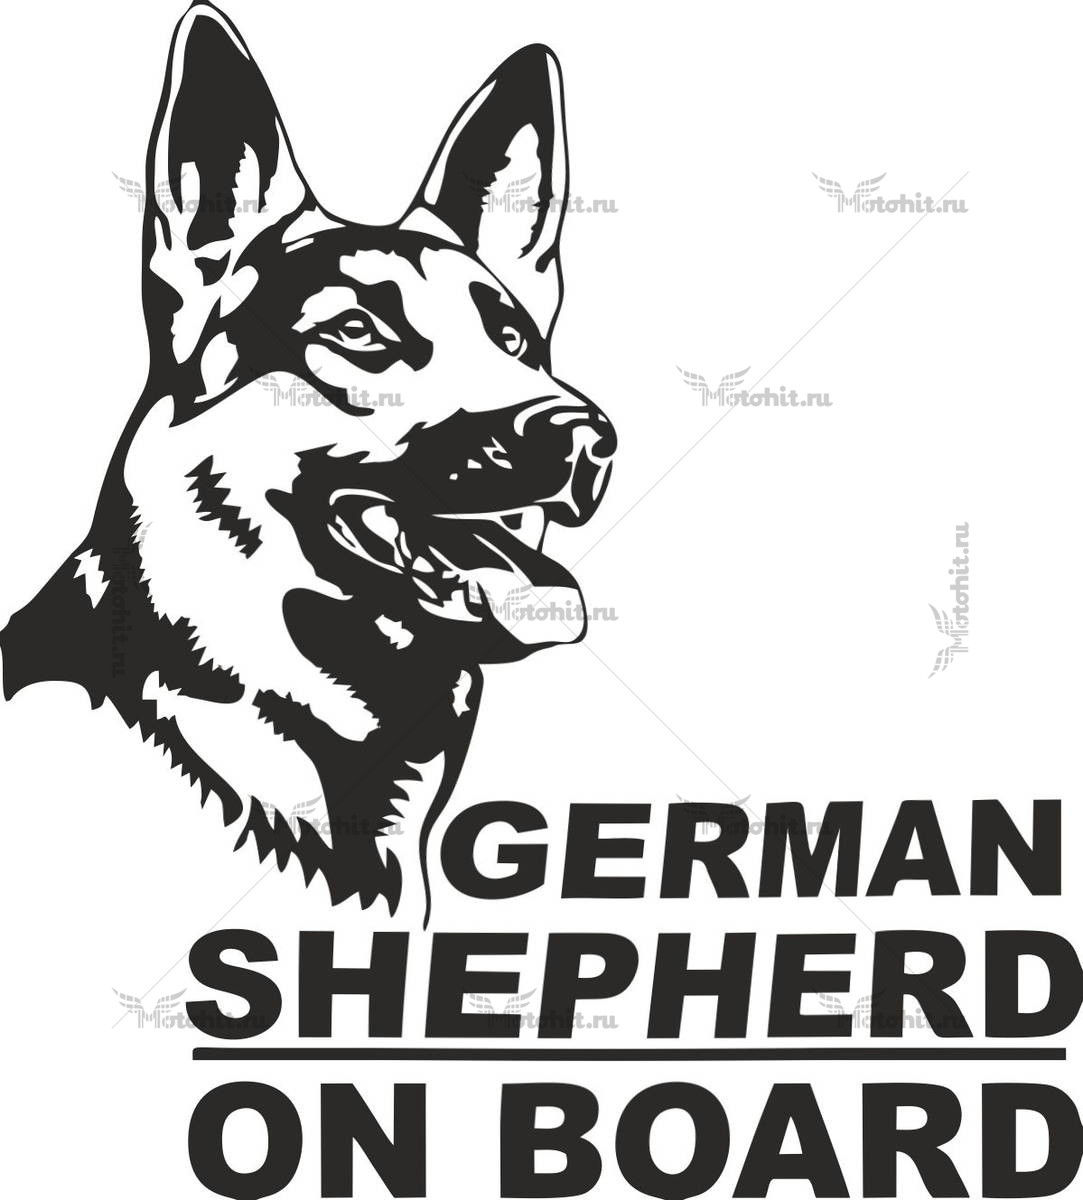 GERMAN SHEPARD ON BOARD